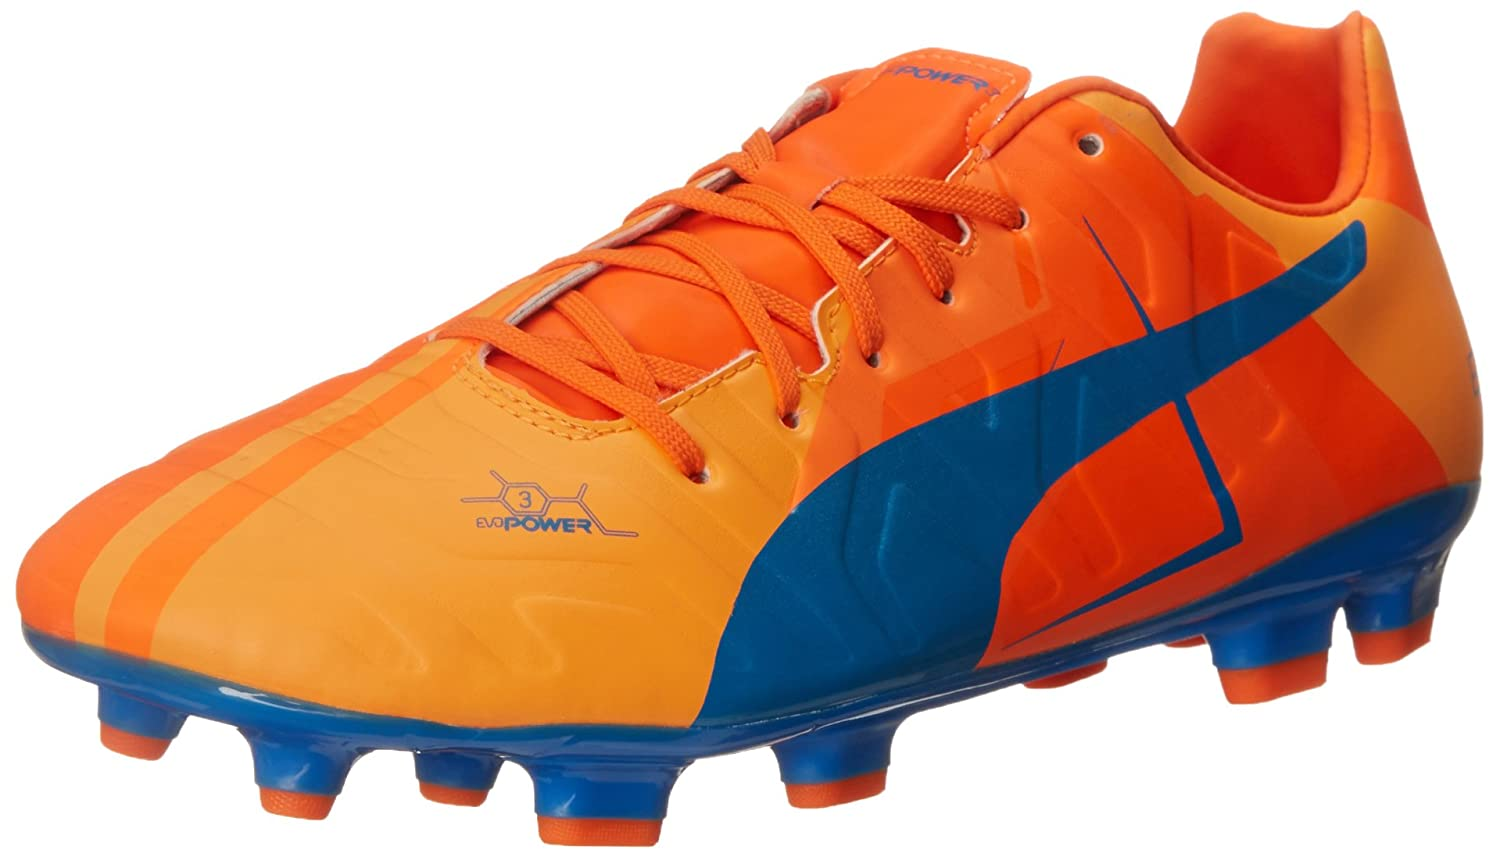 PUMA メンズ B00VQUV96M 12 US|Orange Clown Fish Orange Clown Fish 12 US